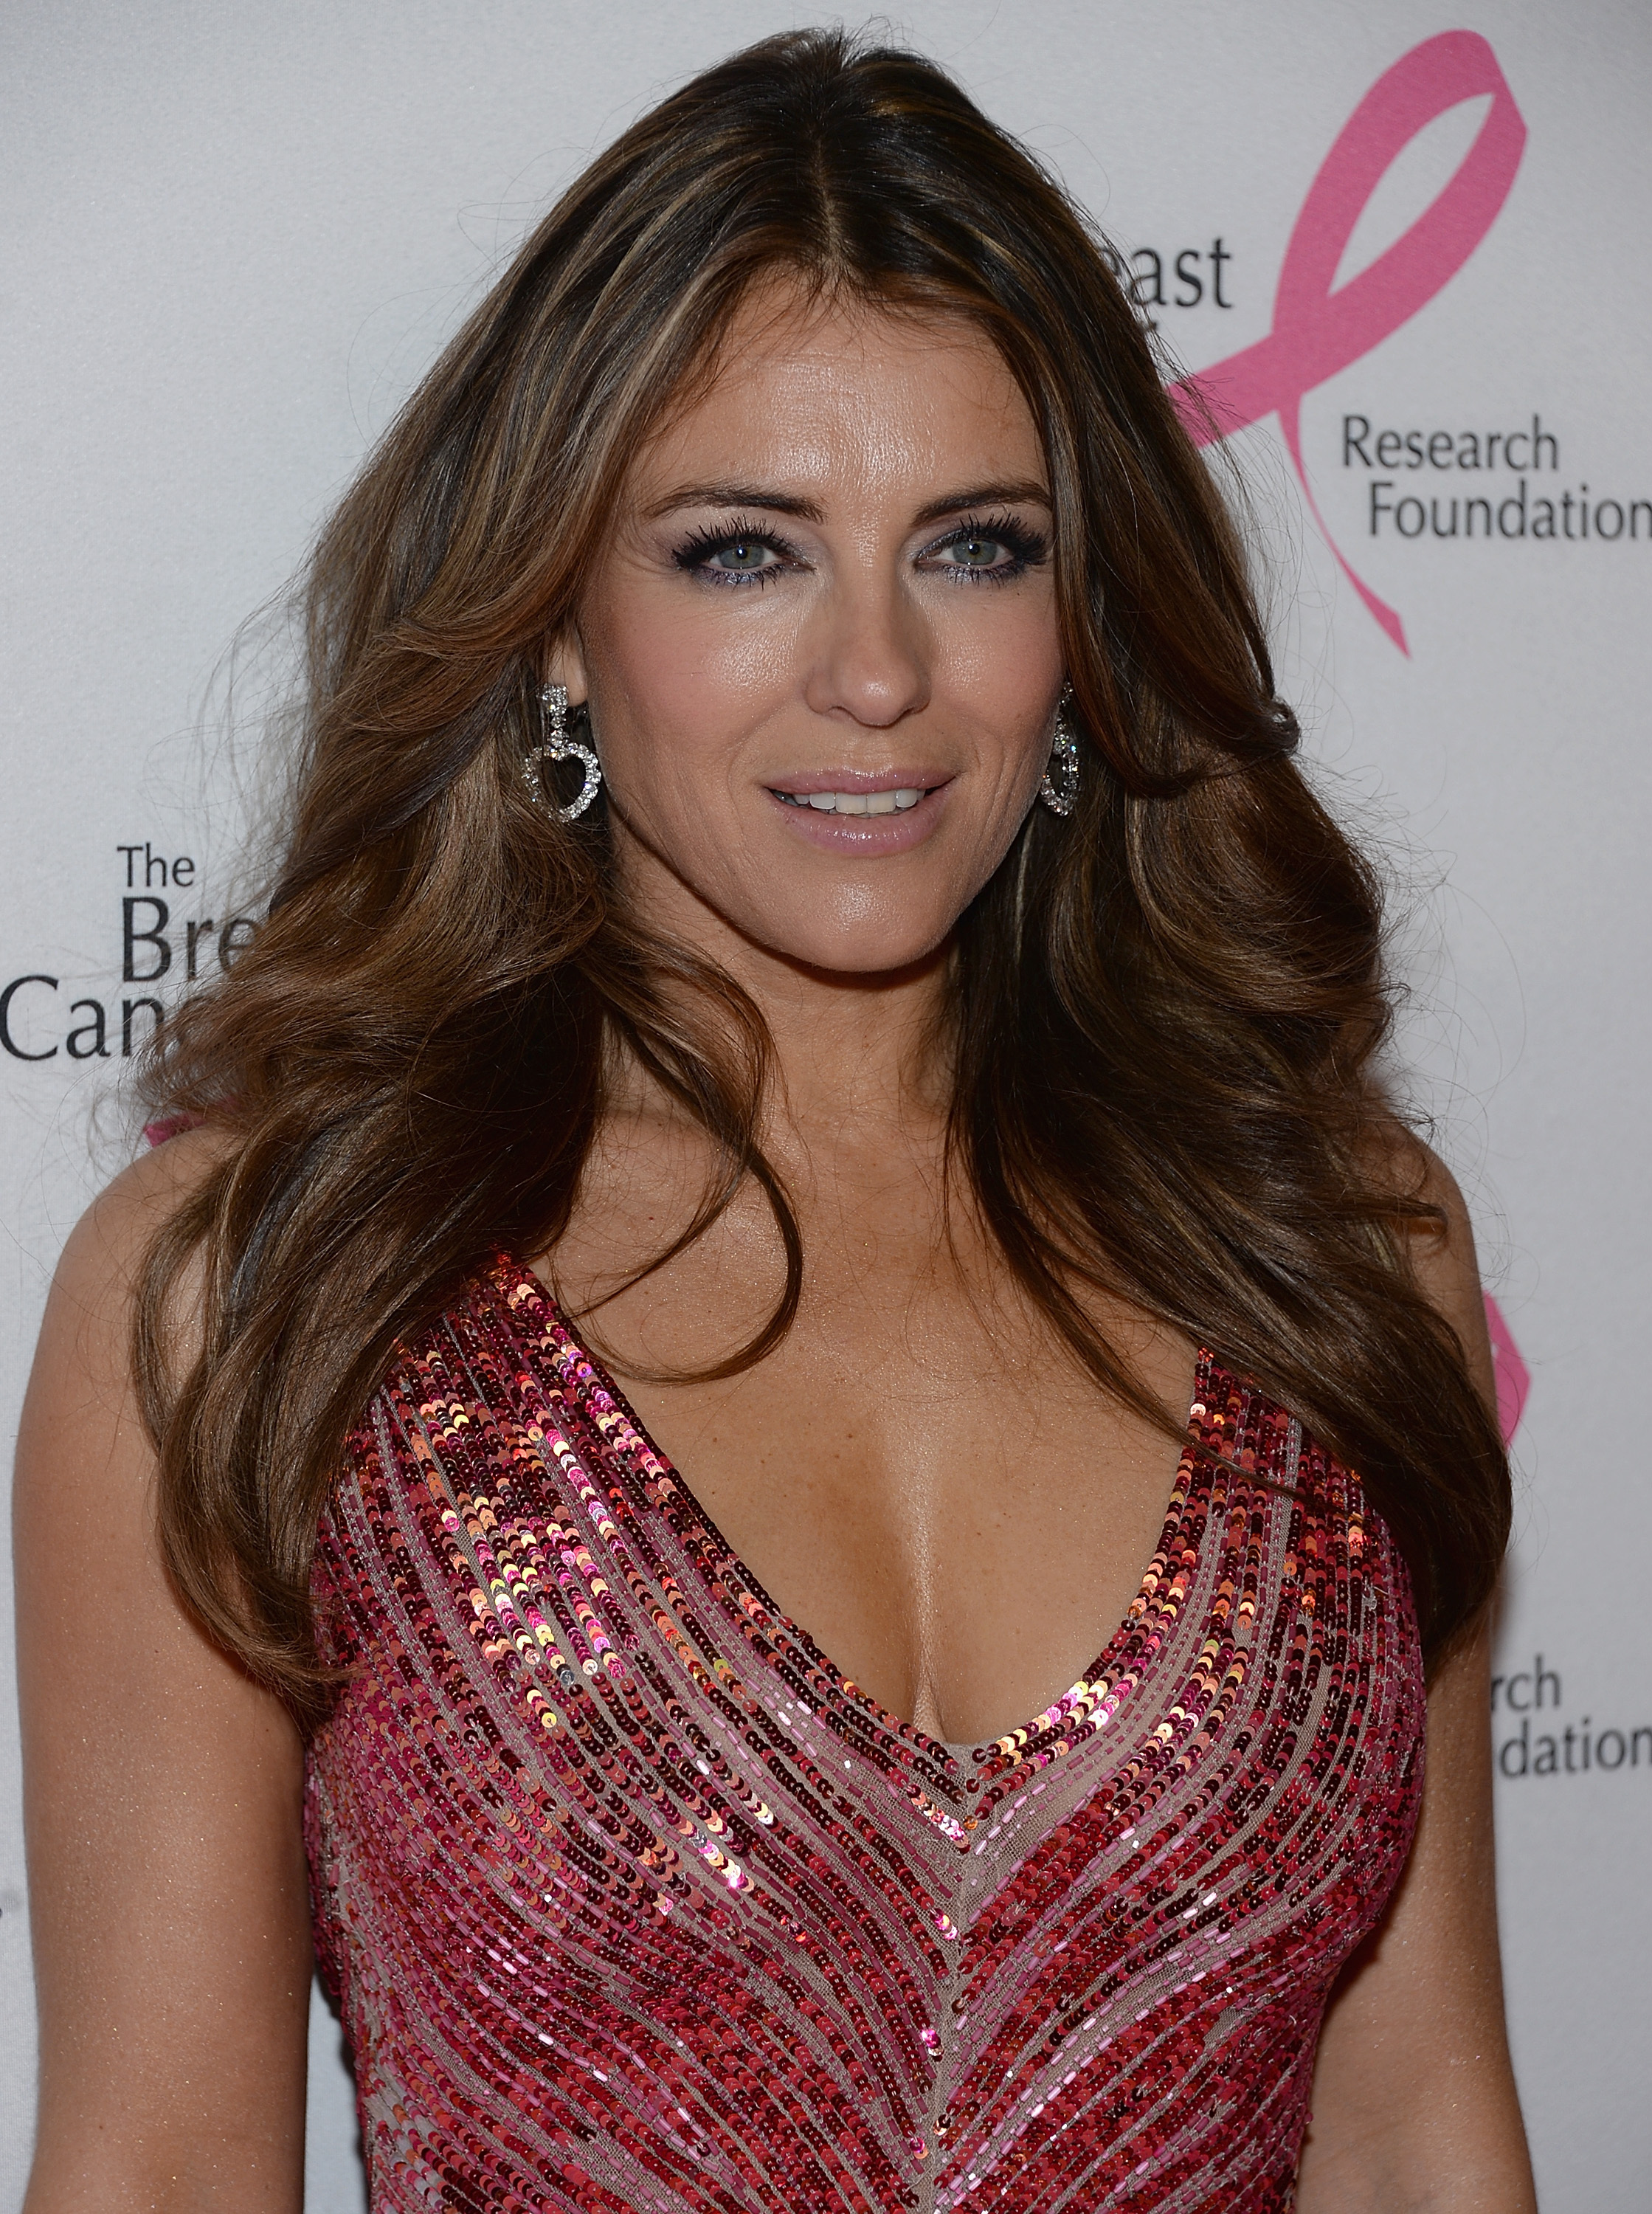 'Appalling' time: Actress Liz Hurley, who lives near Ledbury, has thanked fans for their support. Picture: Dimitrios Kambouris/Getty Images